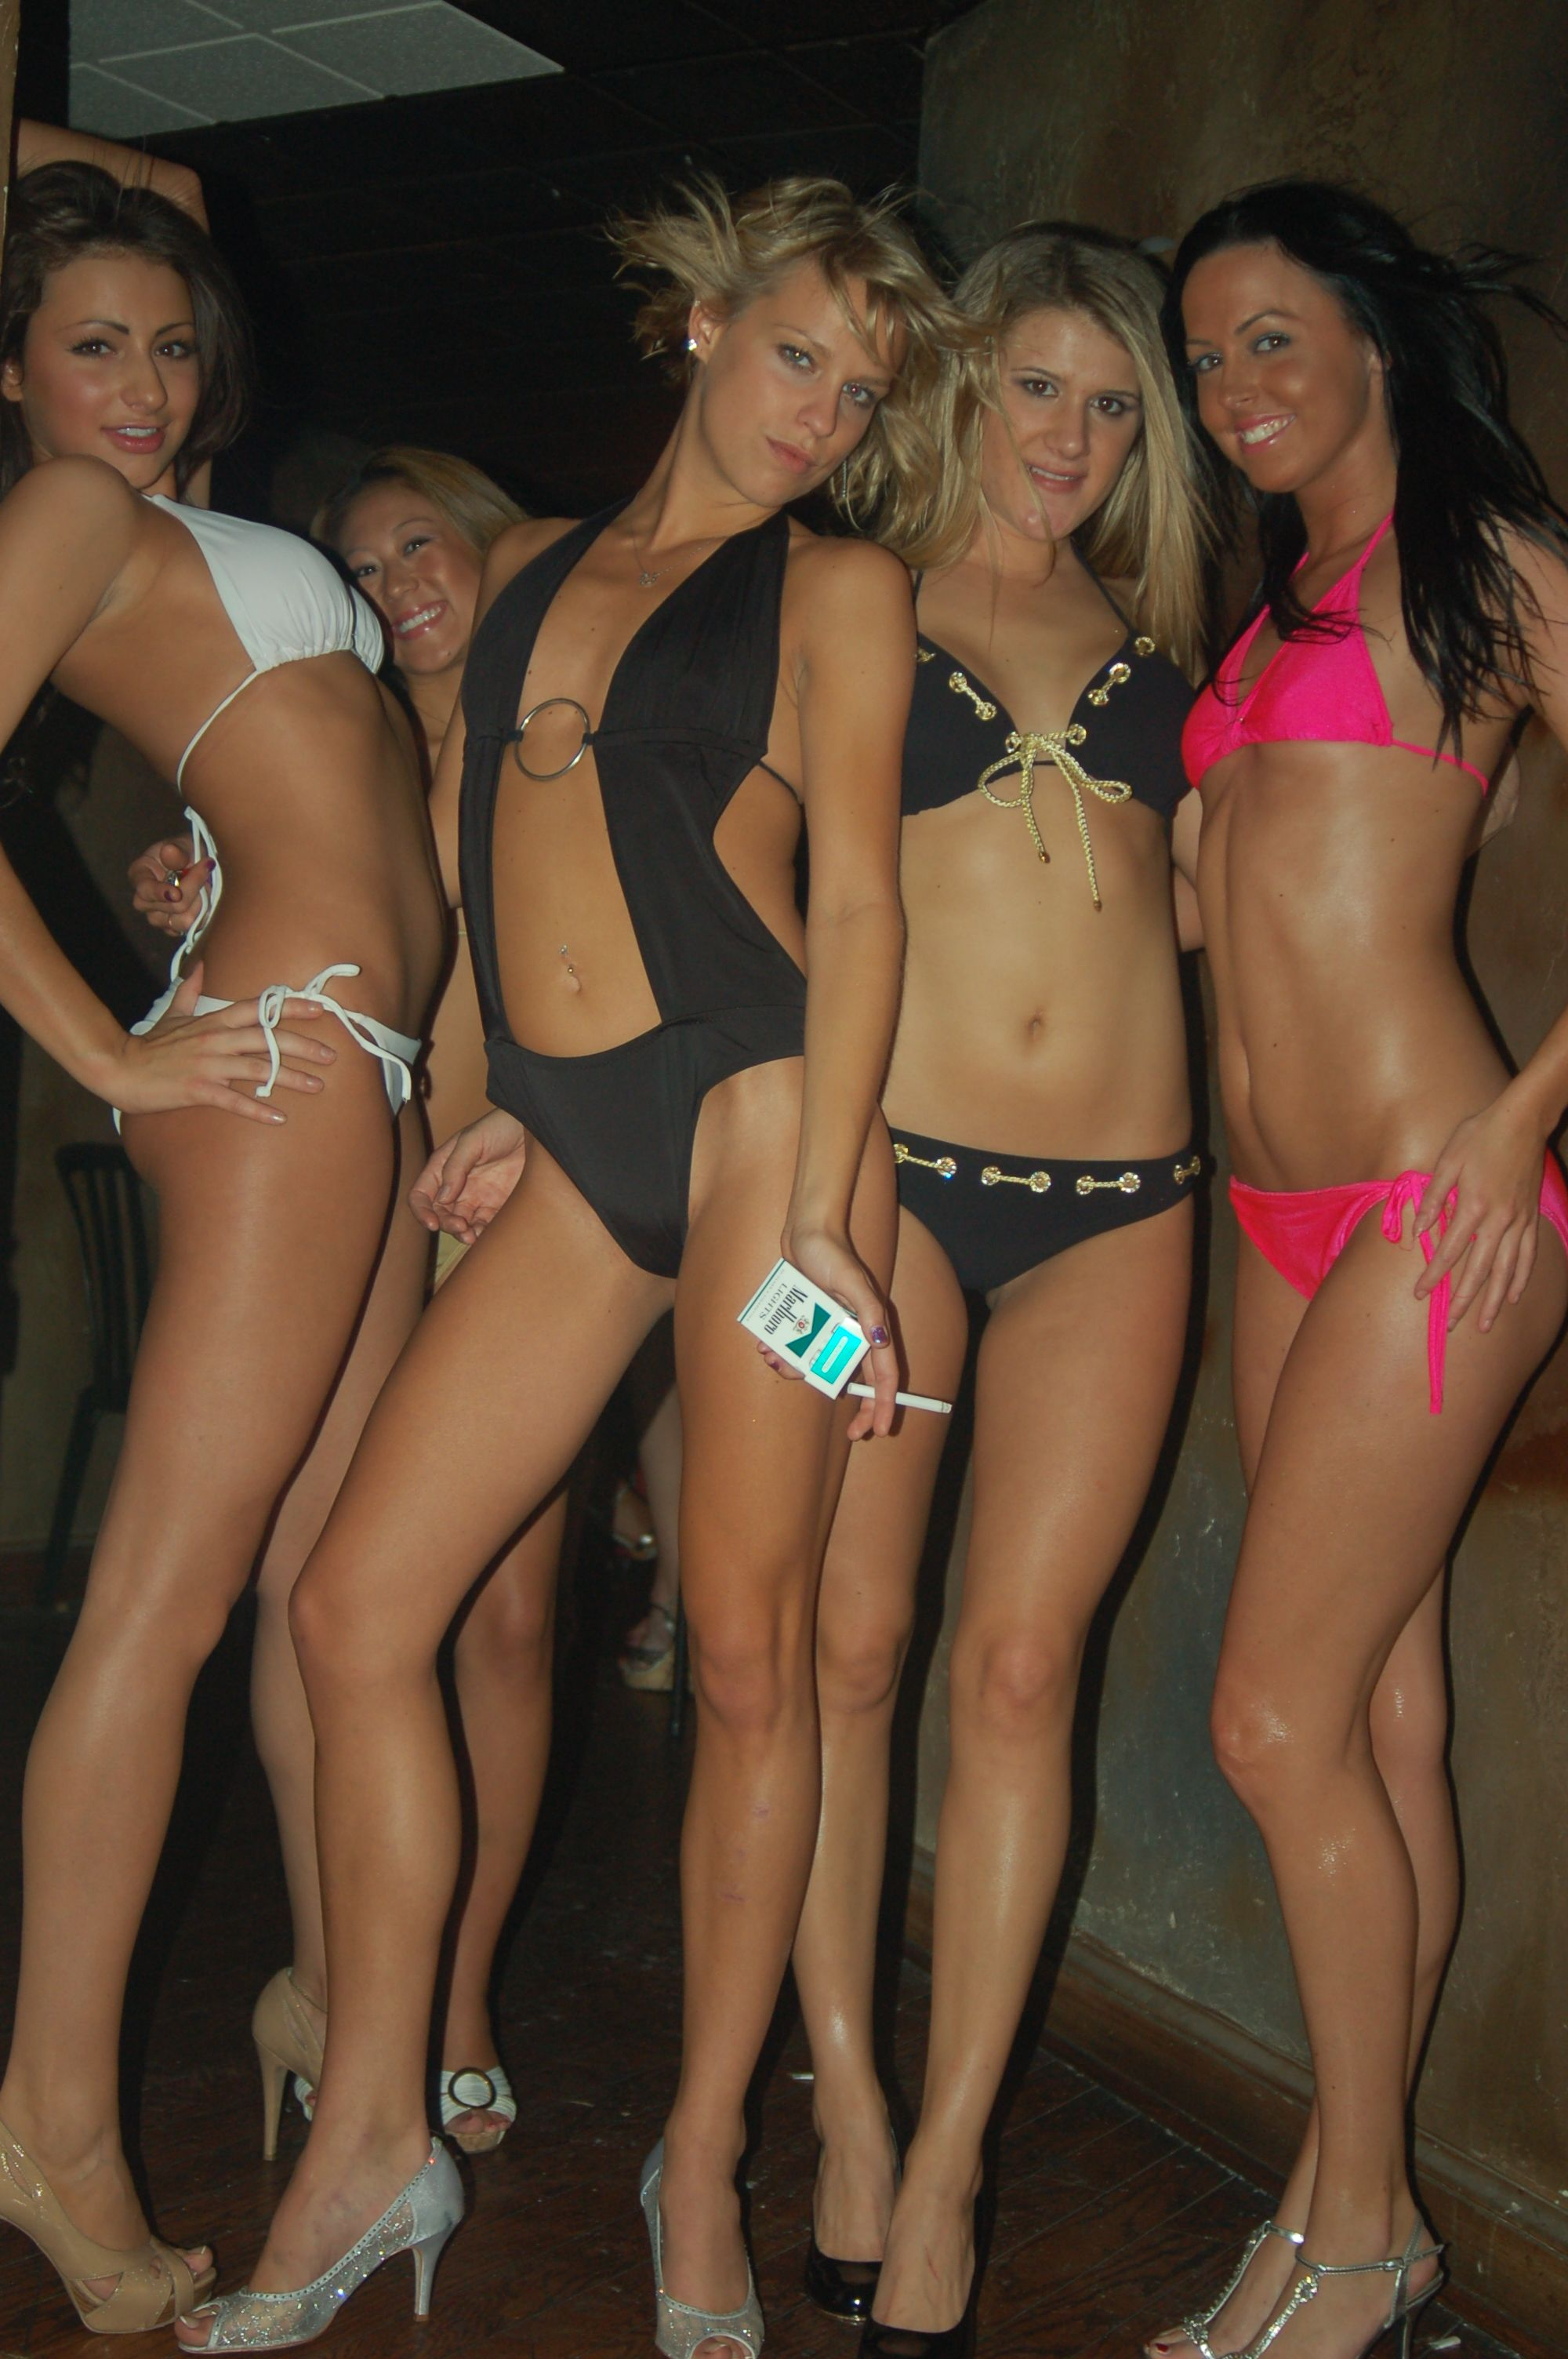 Group bikini butt shots